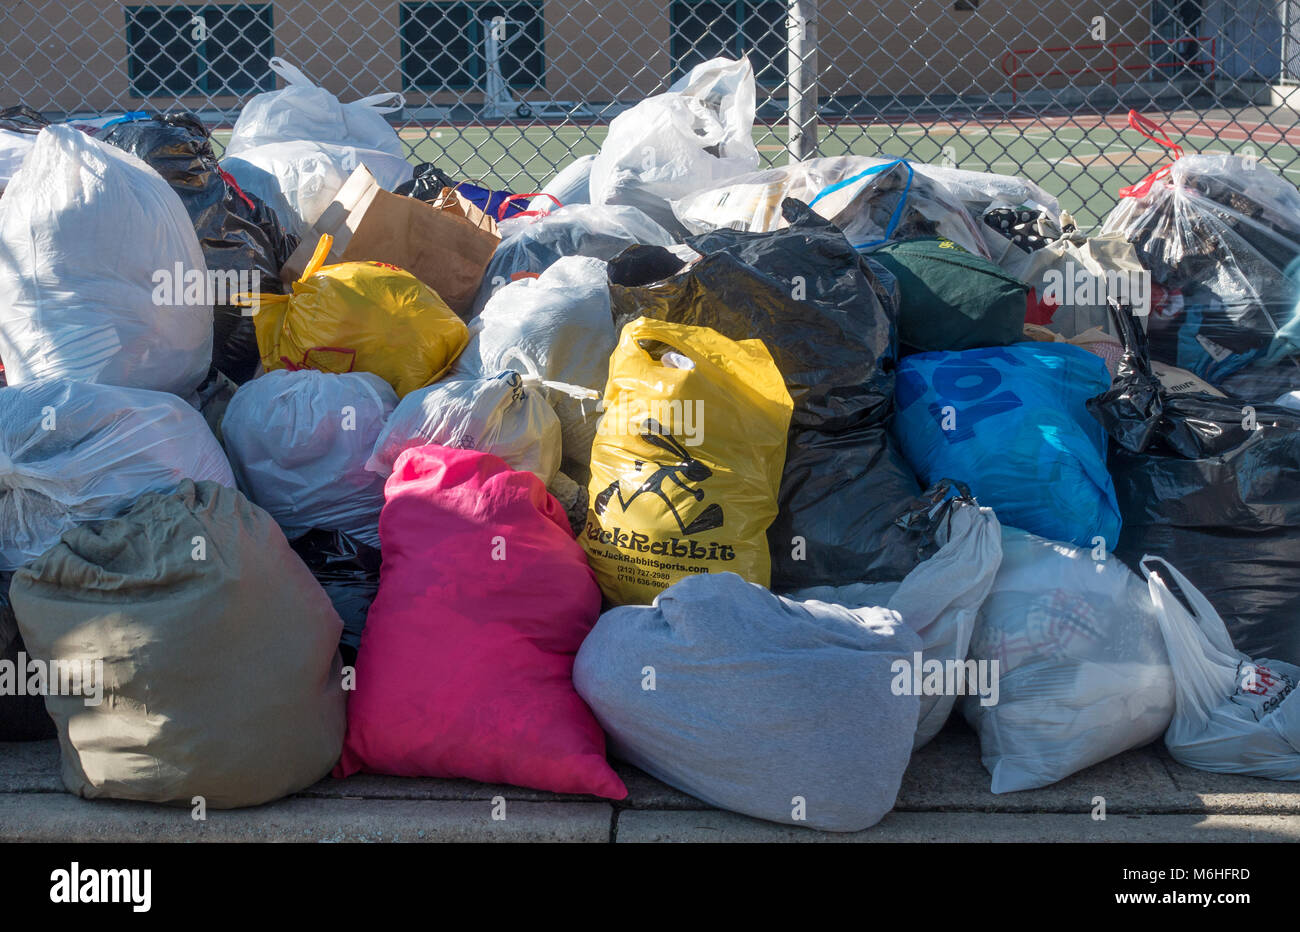 Bundles of used clothing left for distribution to the needy in Carroll Gardens, Brooklyn, NY - Stock Image